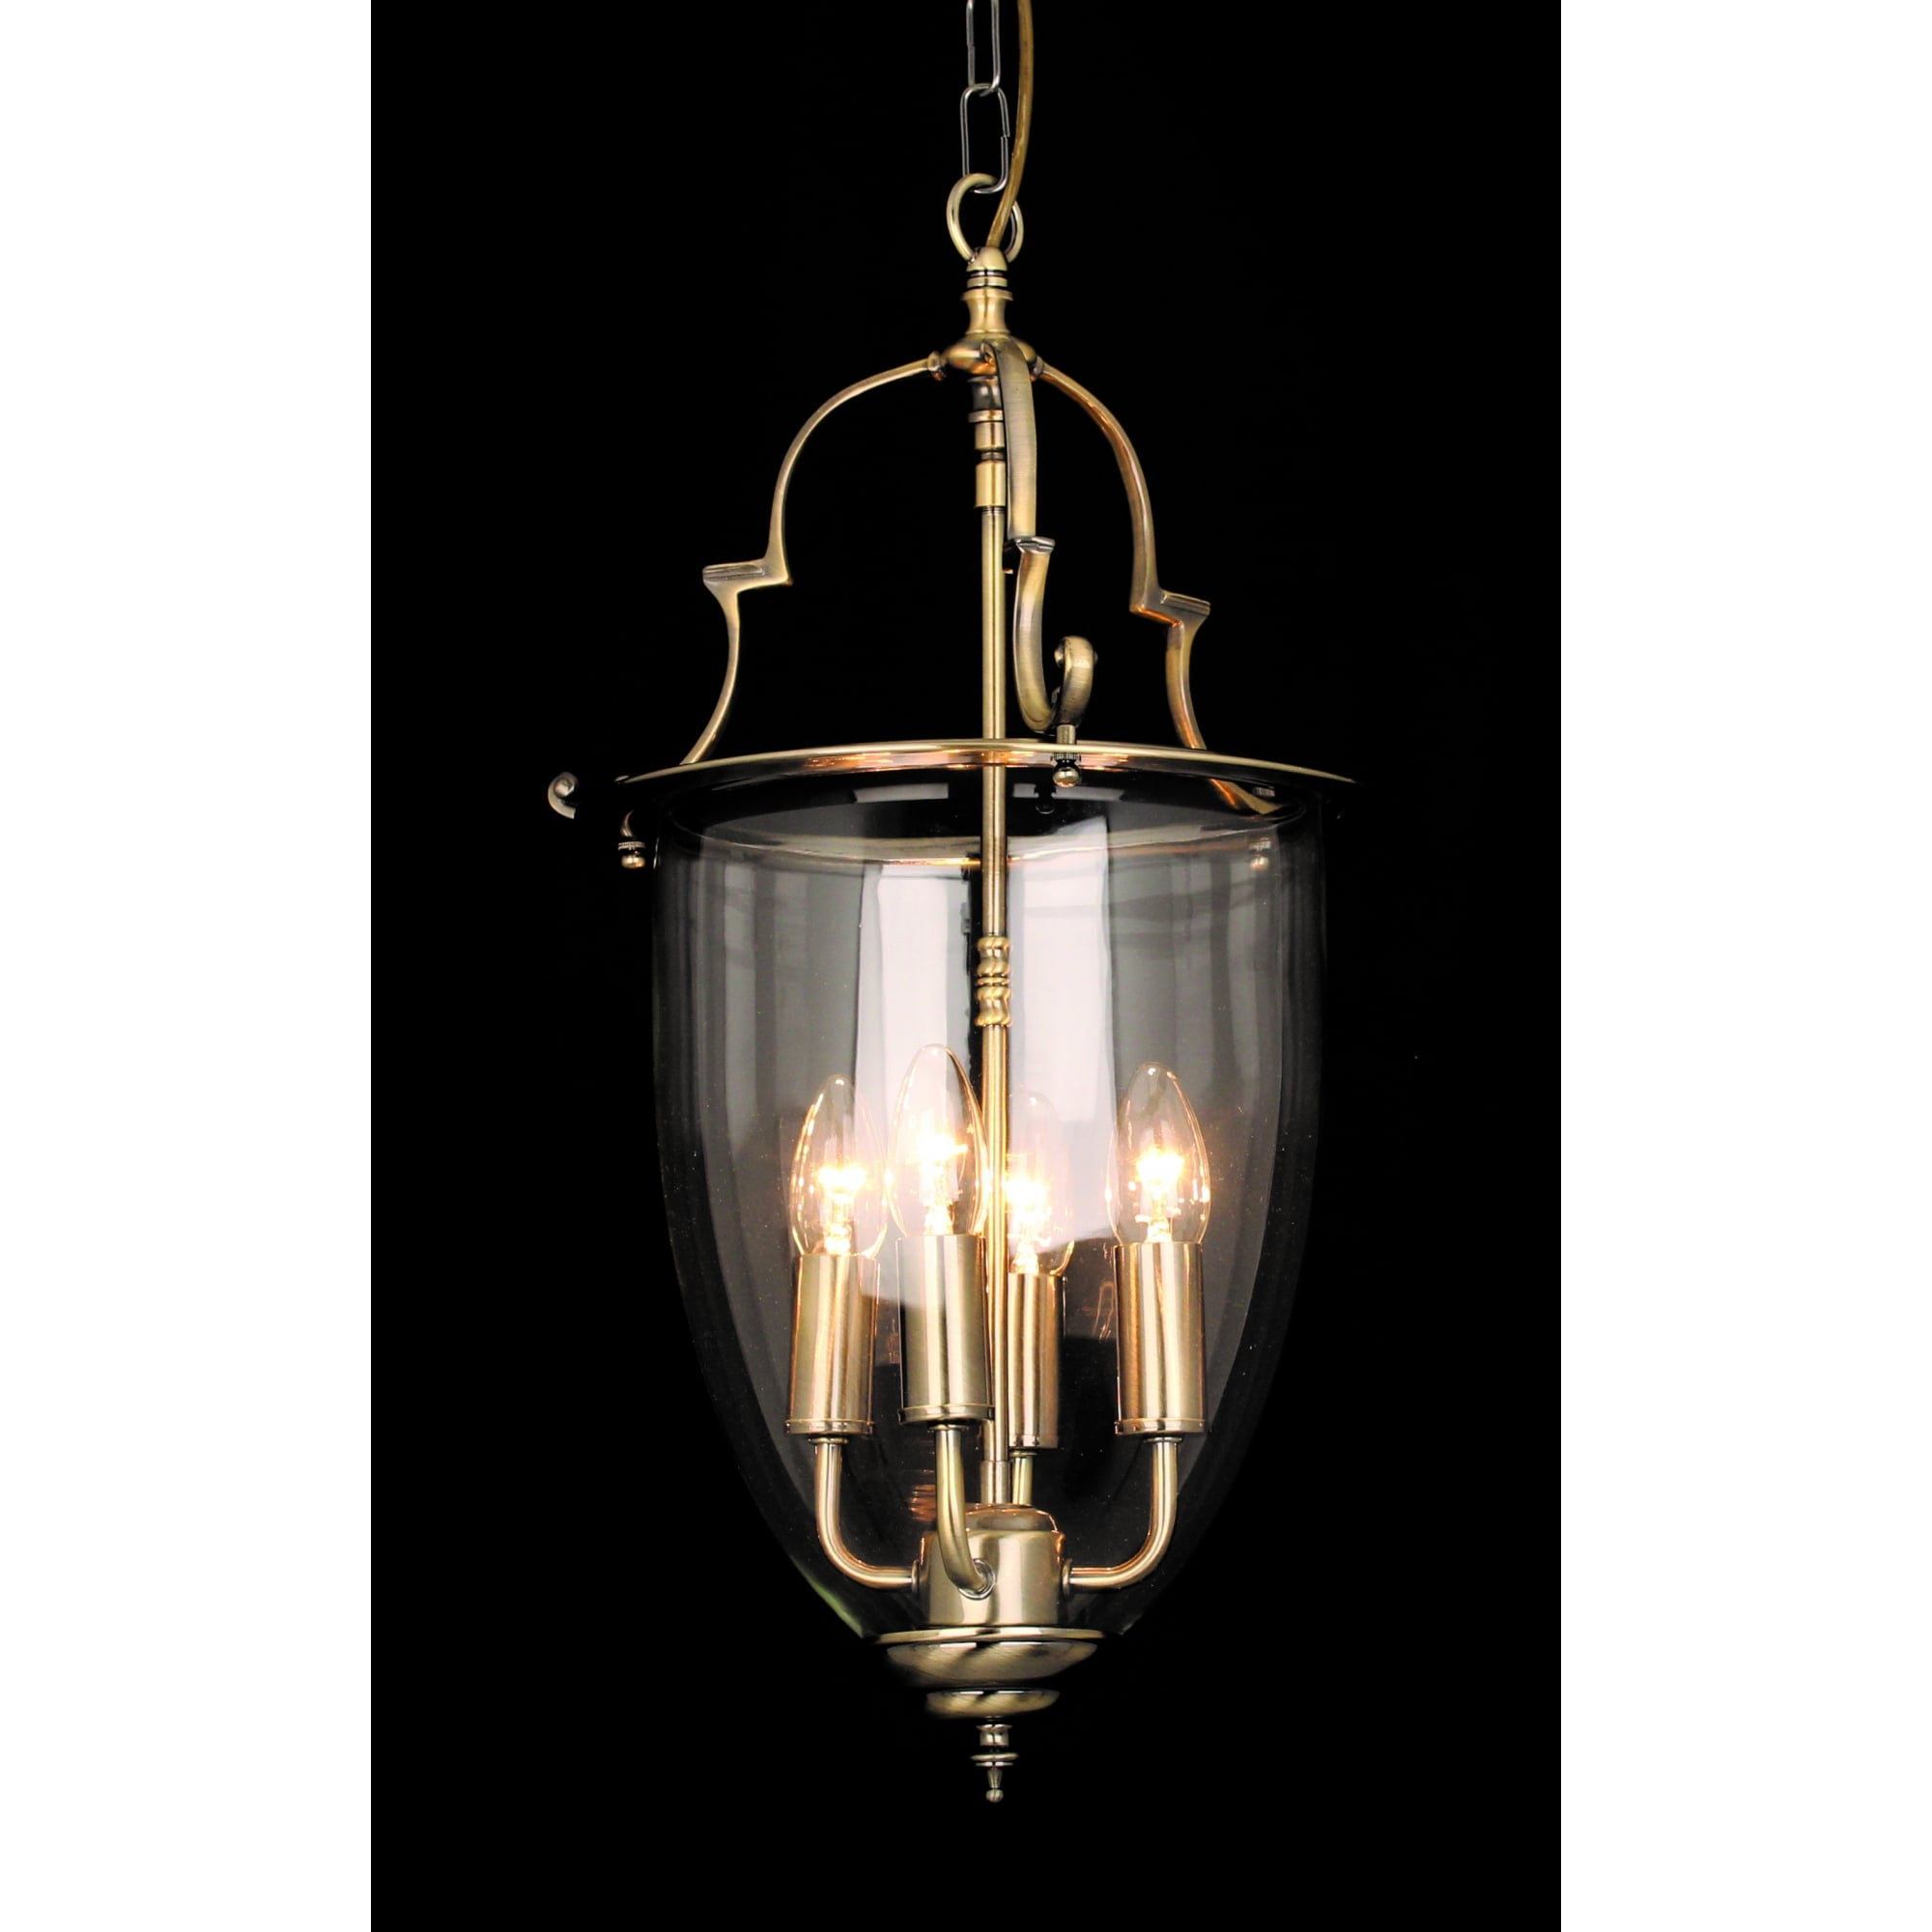 Norfolk Classic 4 Light Ceiling Lantern In Antique Brass Finish Lg201121 04 Ab Lighting From The Home Lighting Centre Uk